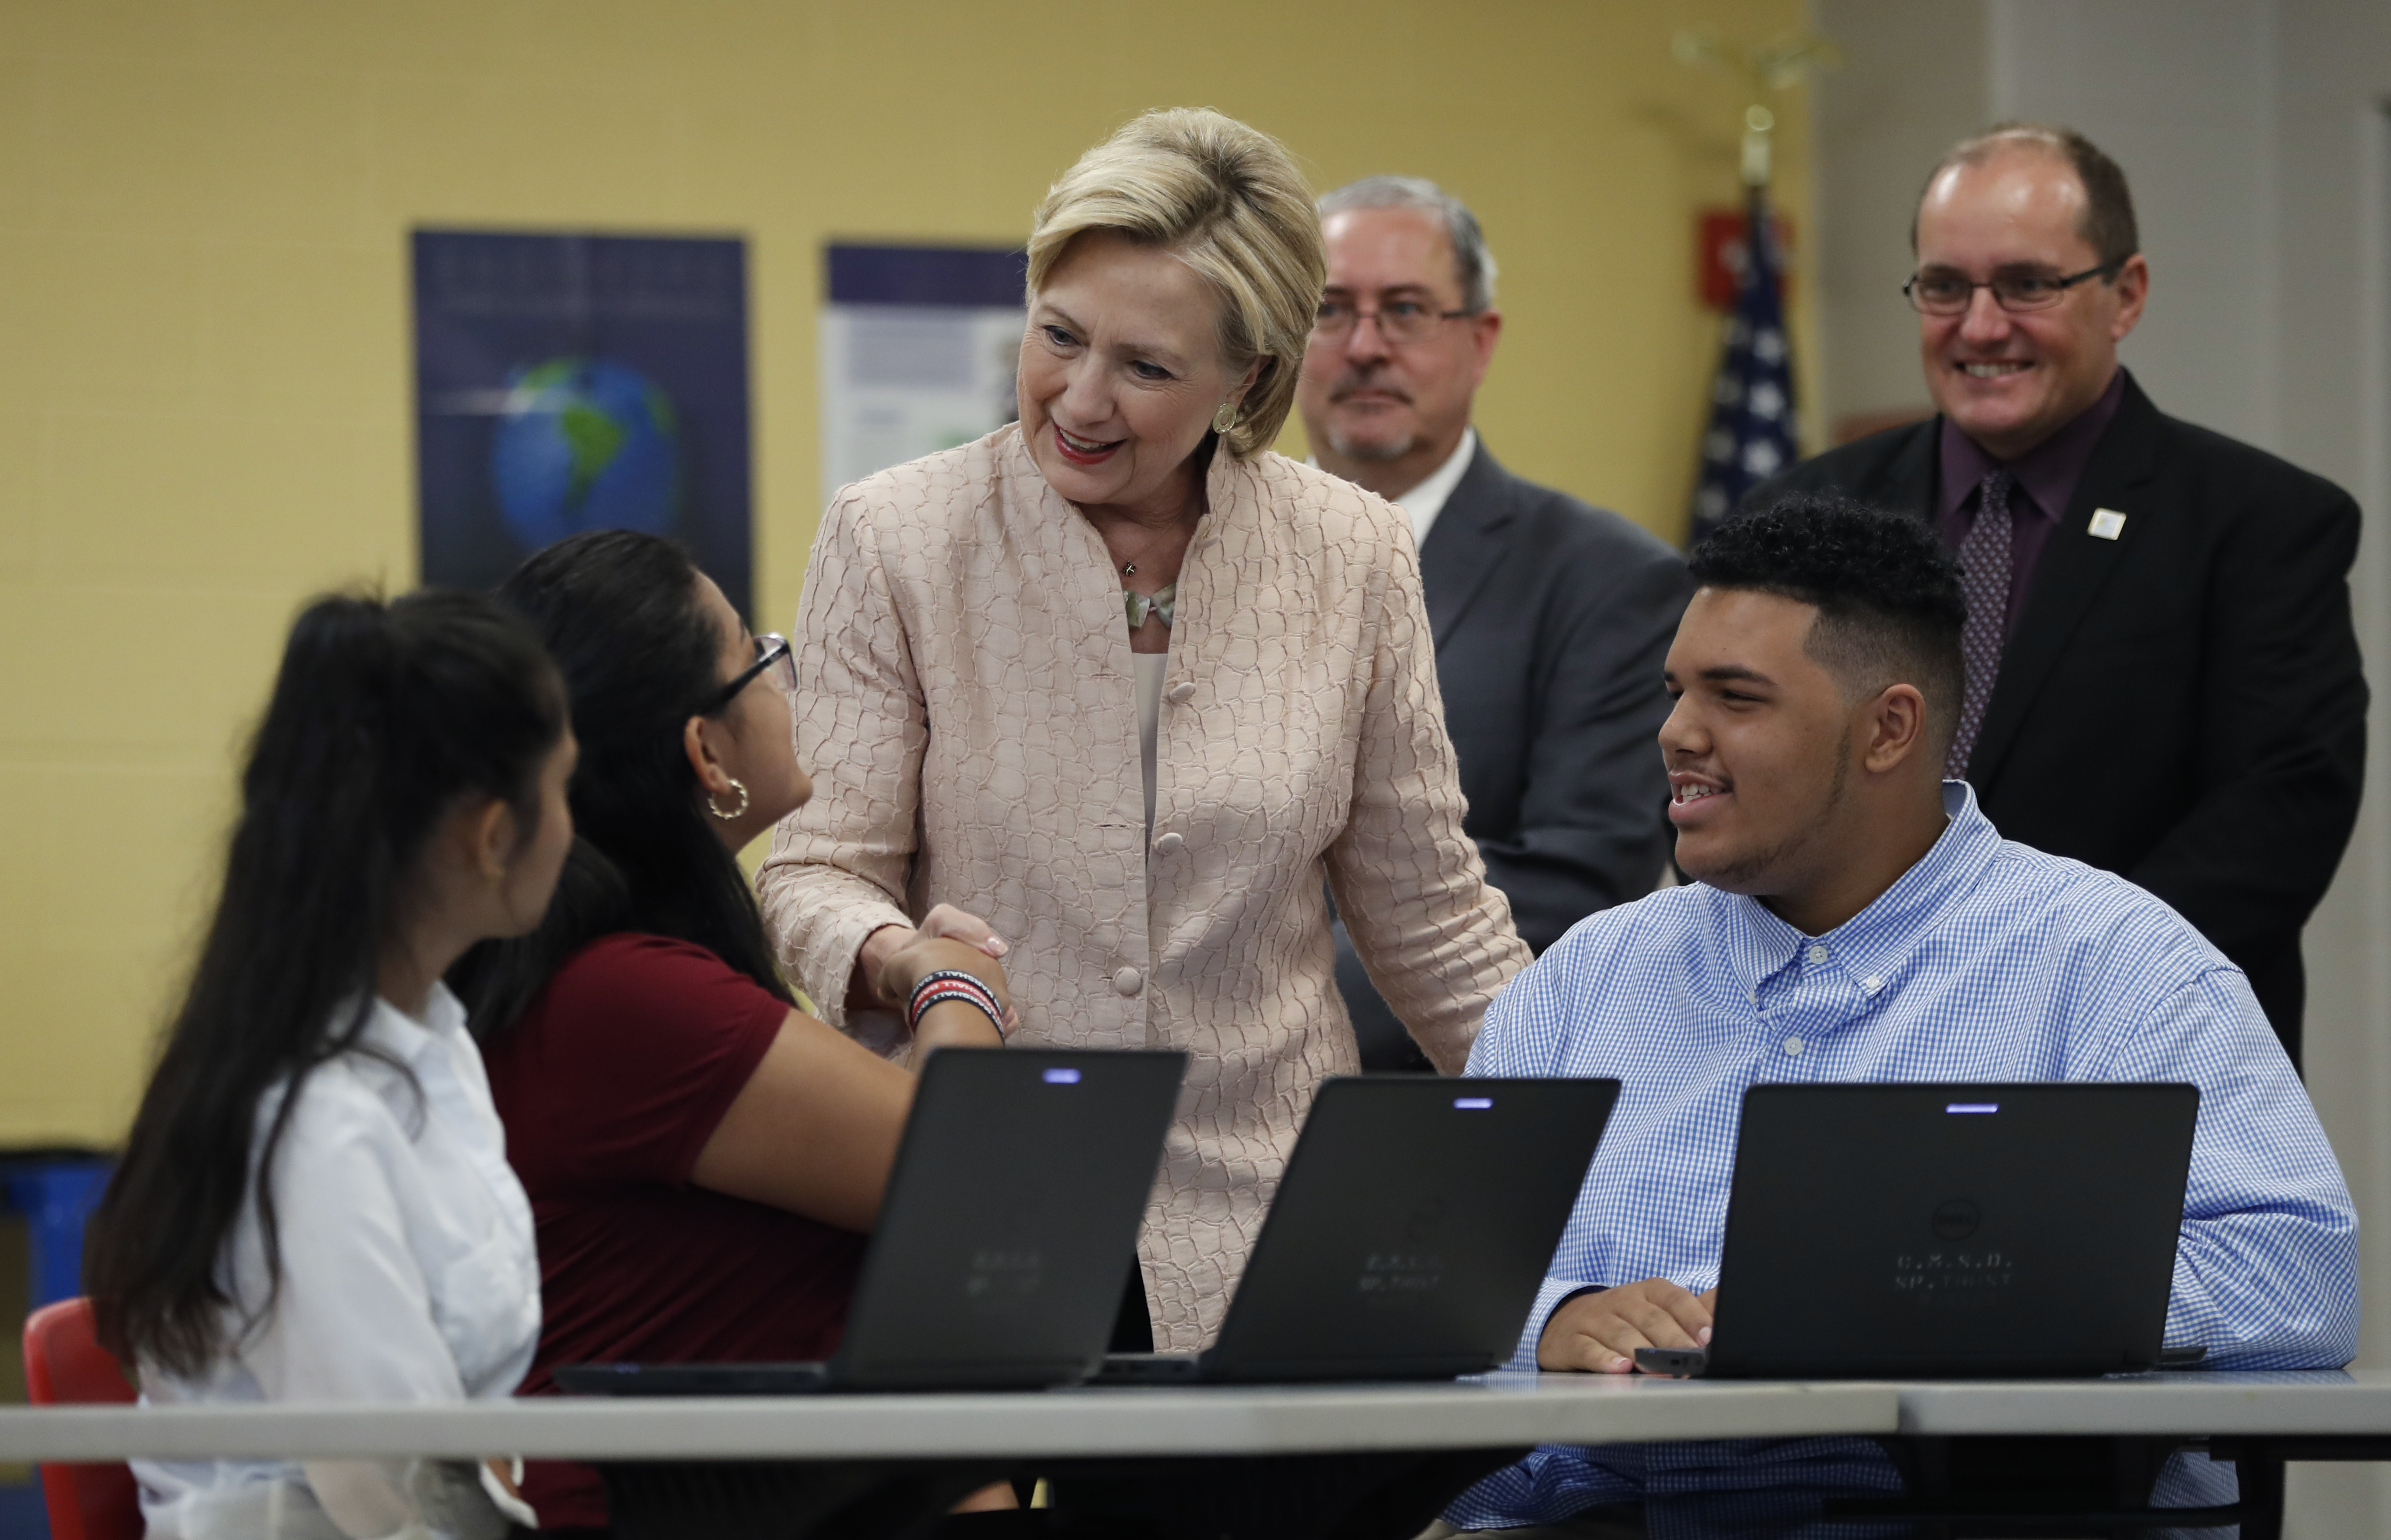 Democratic presidential candidate Hillary Clinton talks with students as she tours classrooms at John Marshall High School in Cleveland, Aug. 17, 2016, before participating in a campaign event.